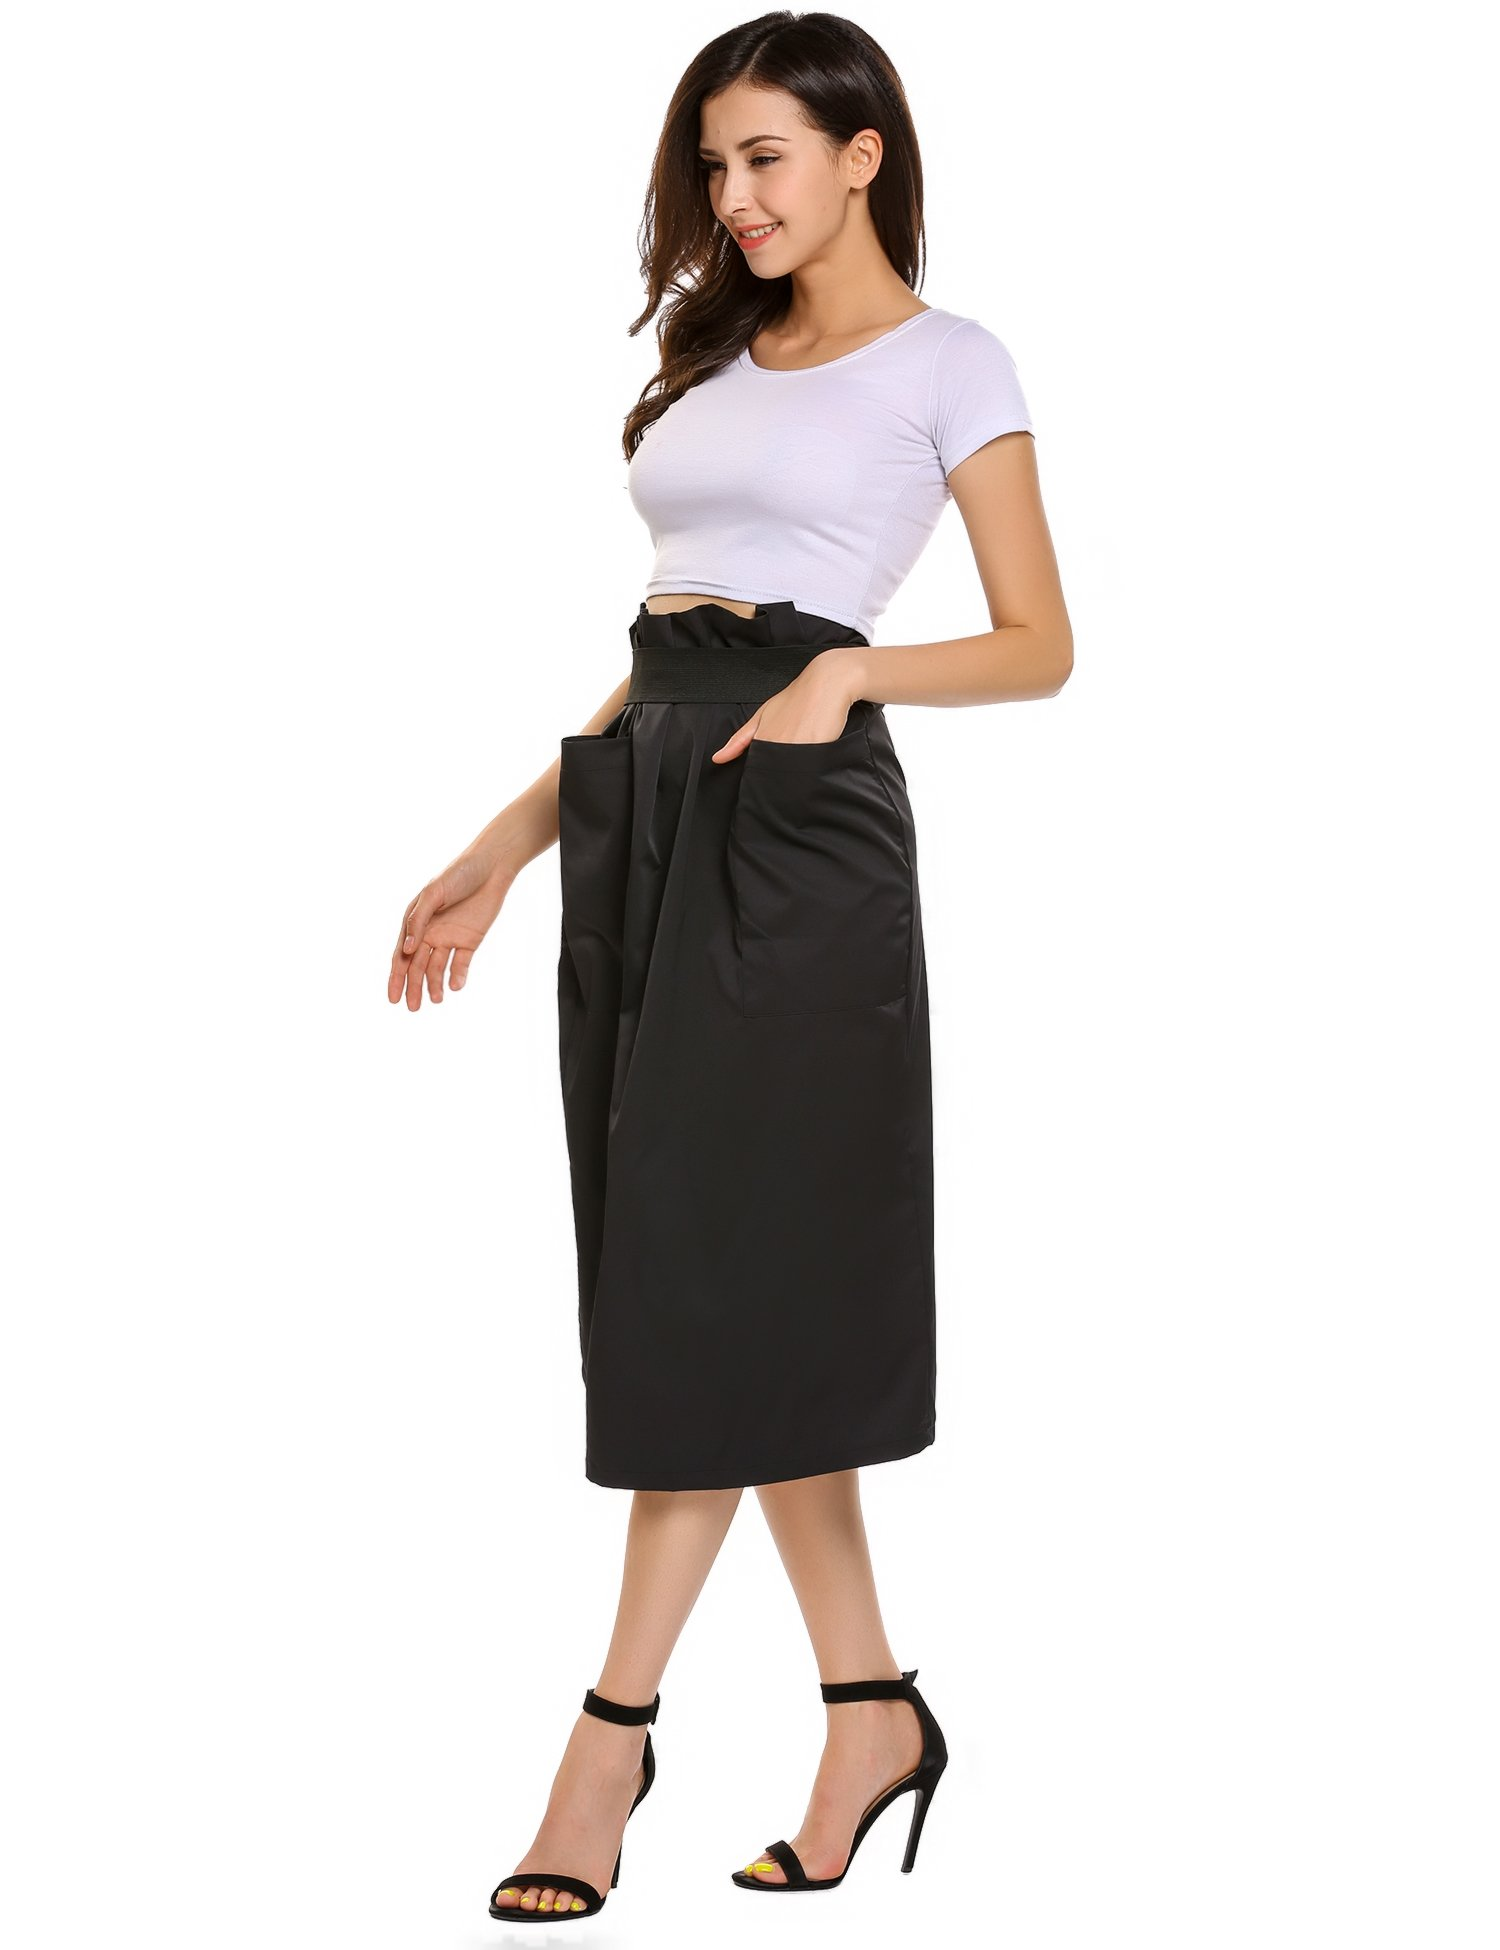 Women Casual High Waisted African A Line Maxi Long Skirt Black Small by Zeagoo (Image #3)